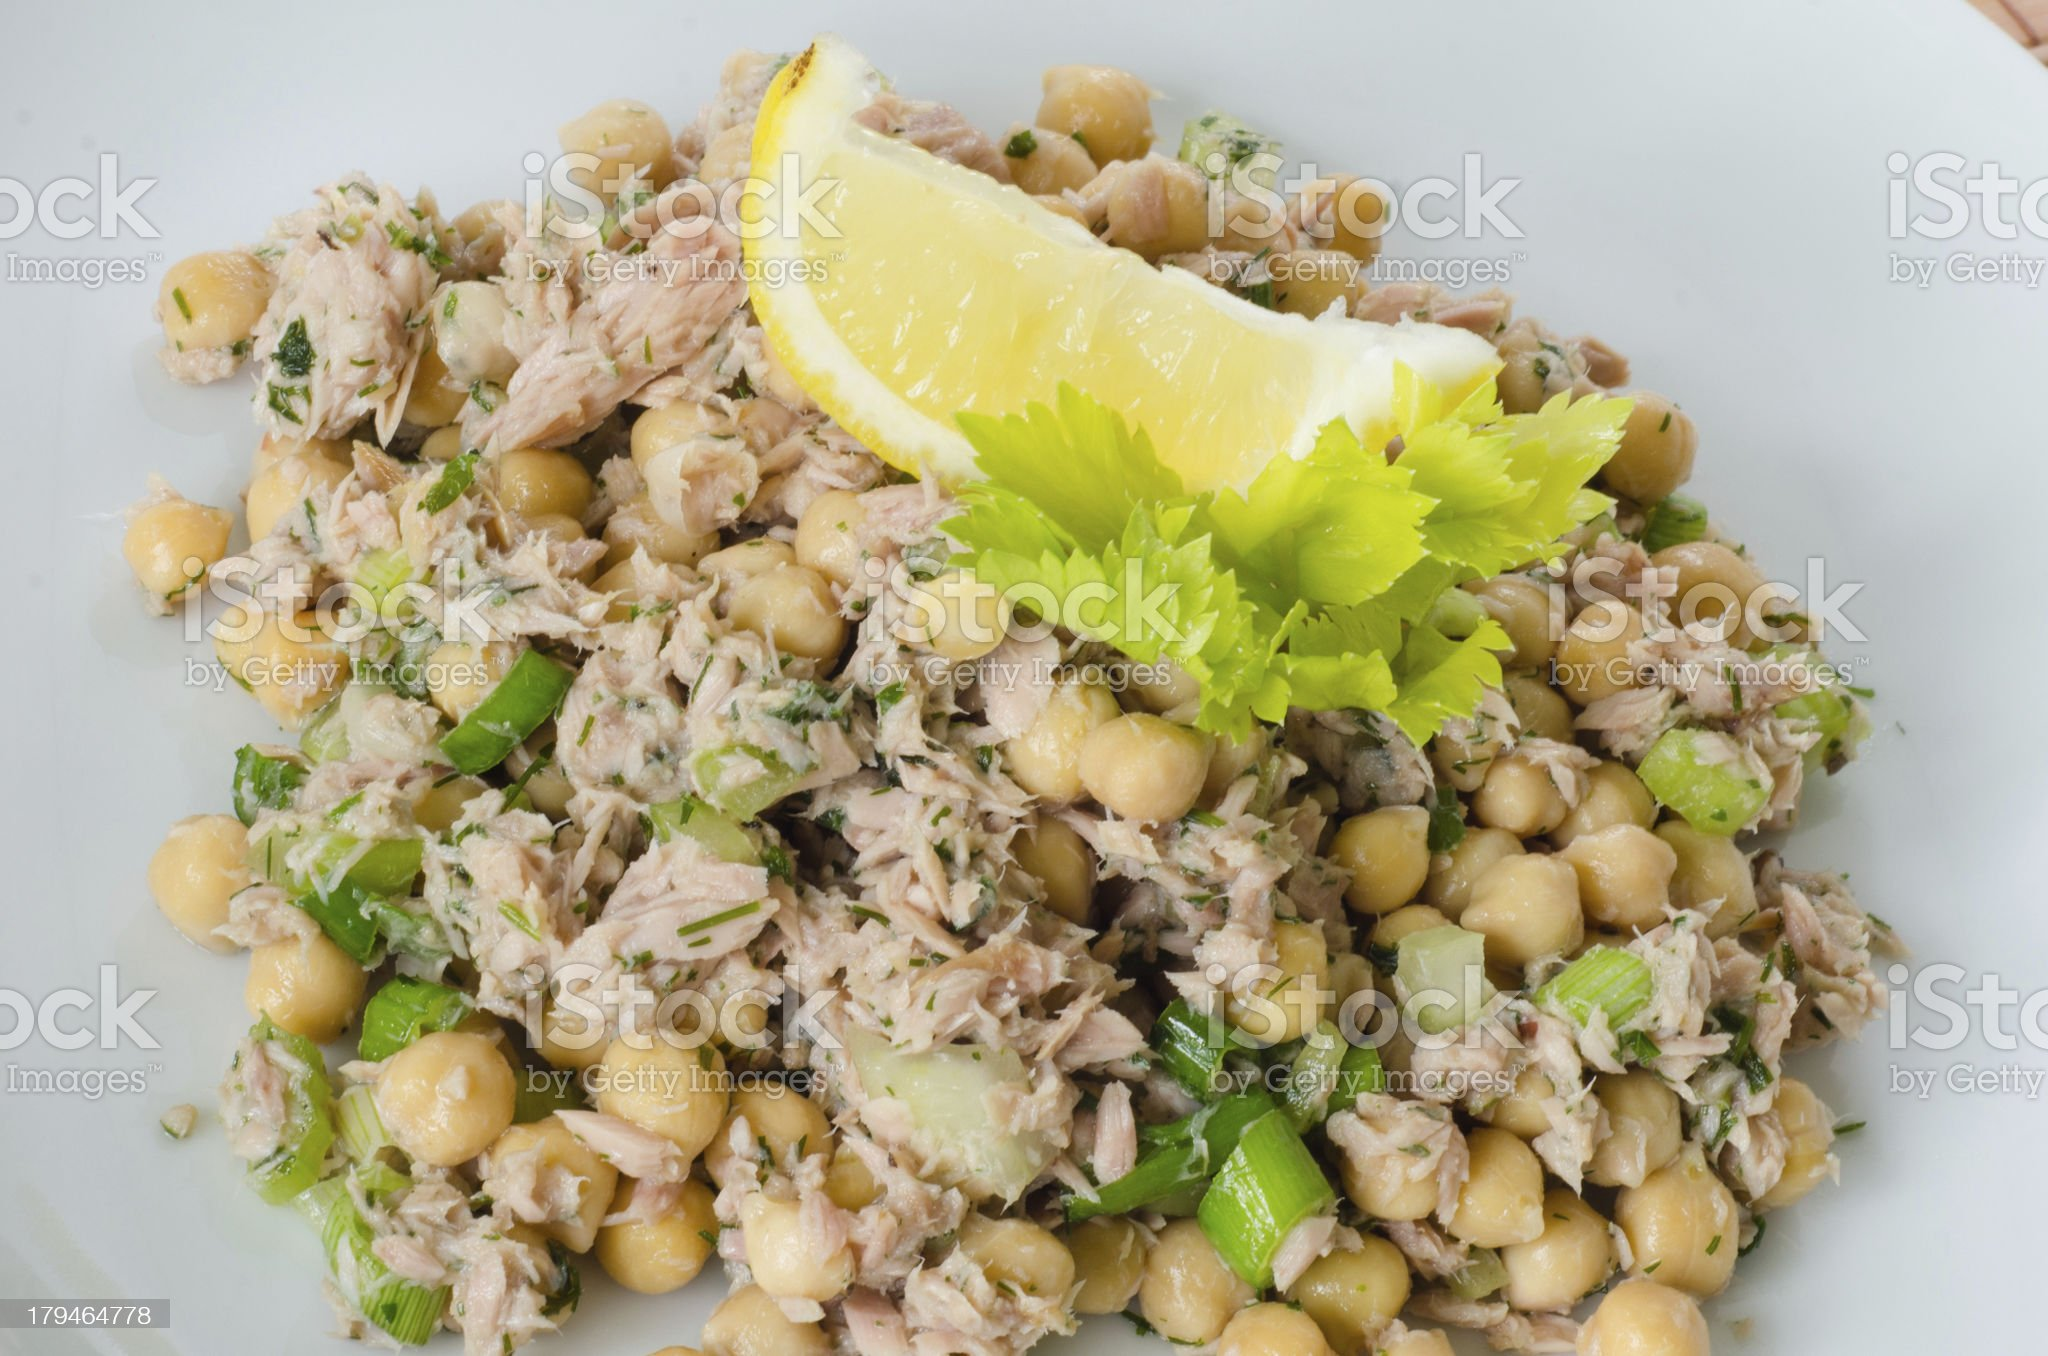 Chickpea salad with tuna, lemon and herbs royalty-free stock photo